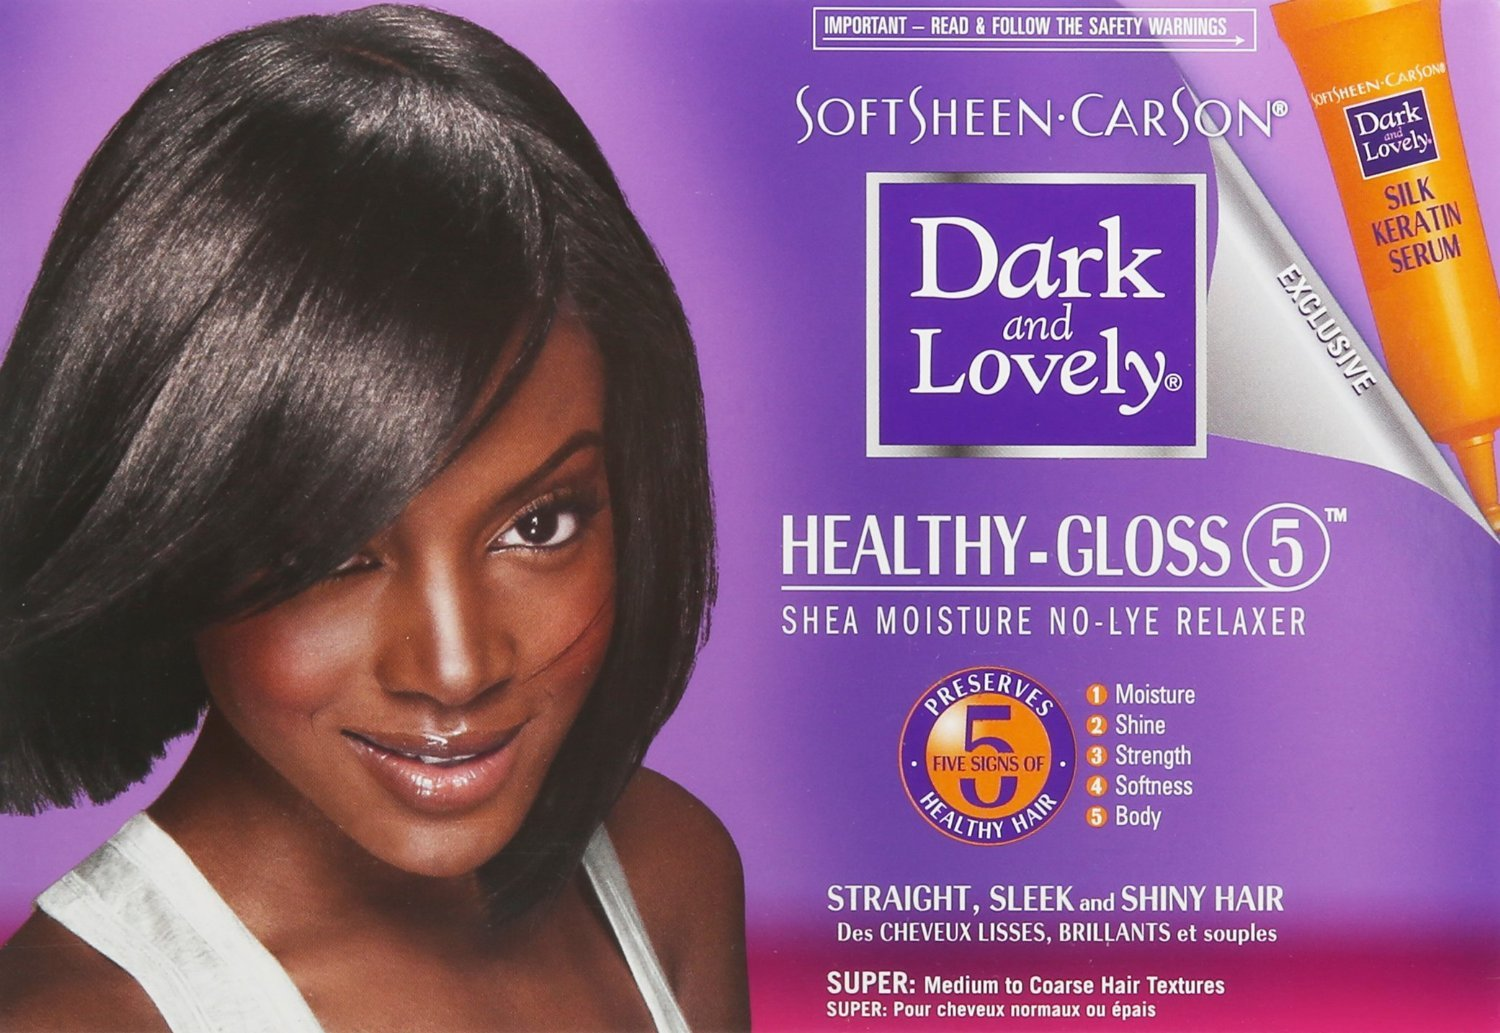 SoftSheen-Carson Dark and Lovely Healthy-Gloss 5 Shea Moisture No-Lye Relaxer